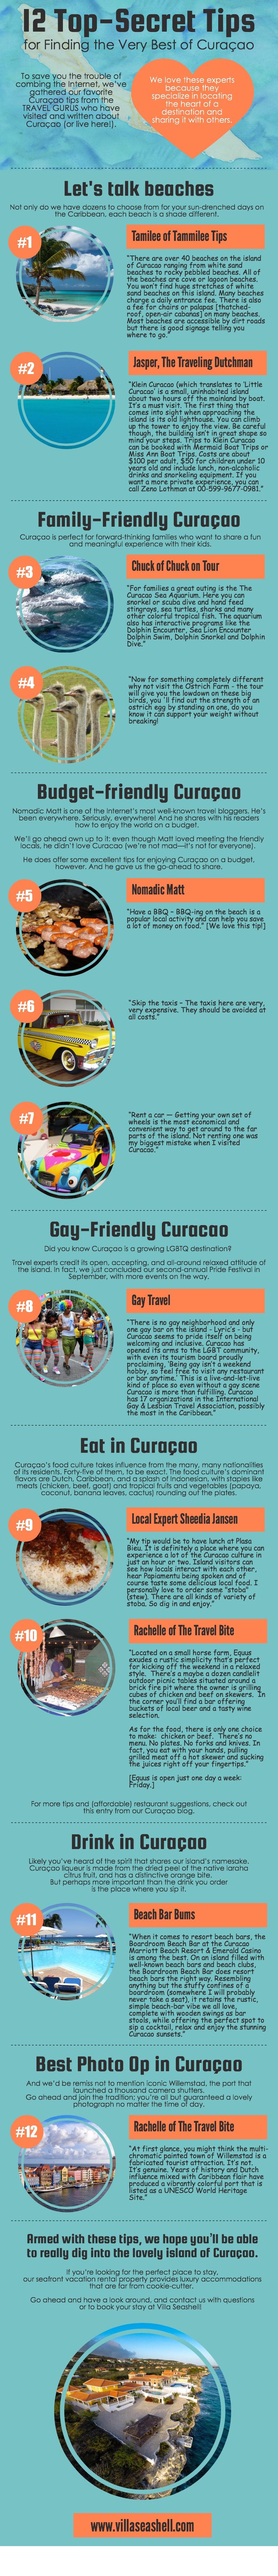 Infographic Curacao